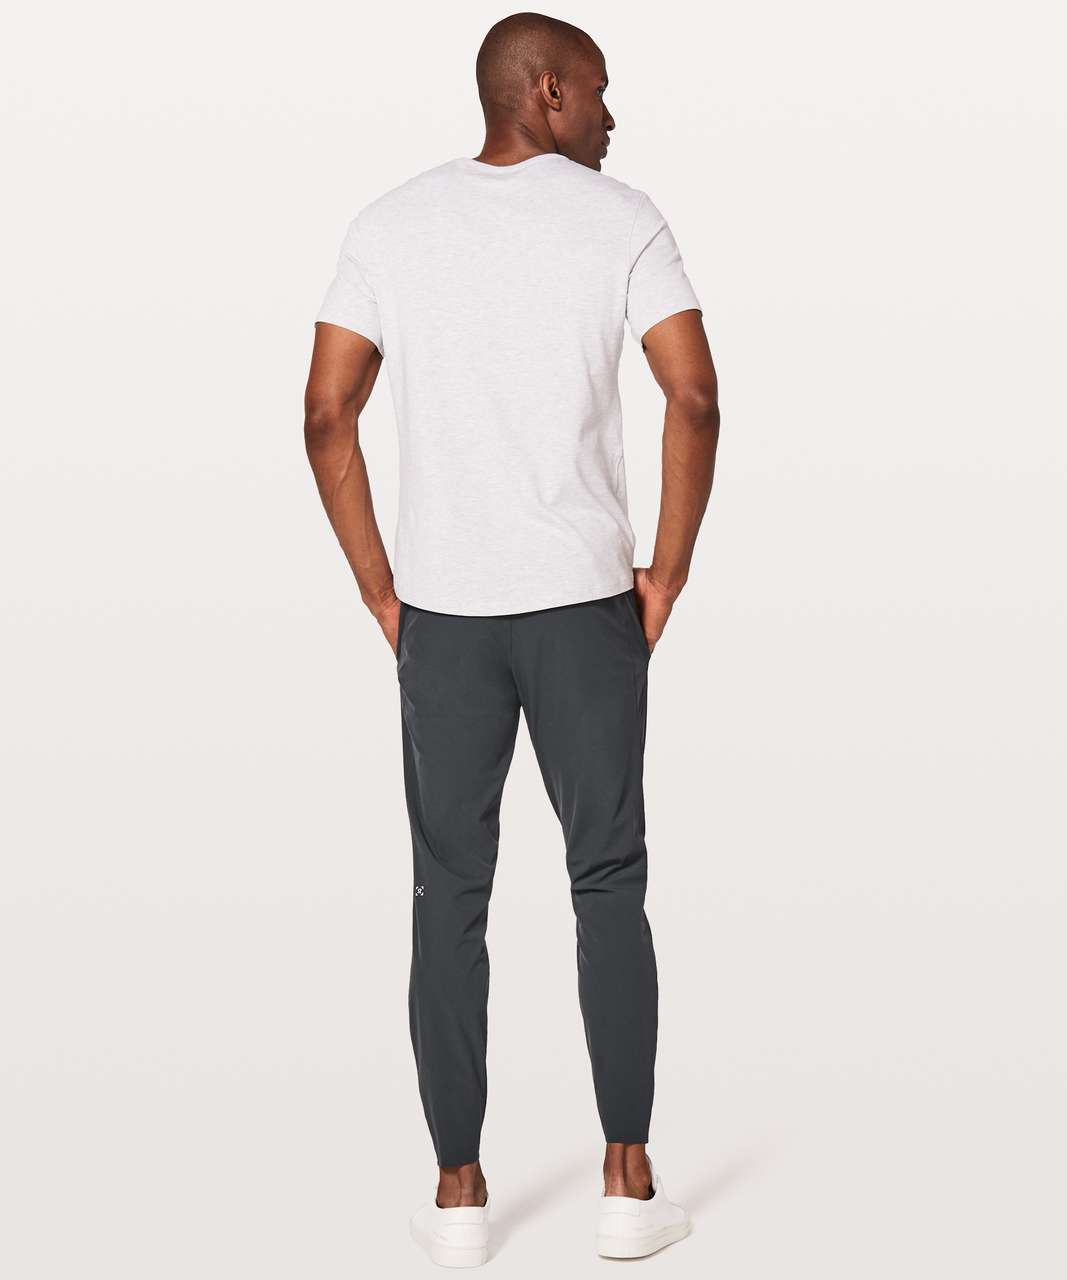 "Lululemon In Mind Pant 32"" - Obsidian"